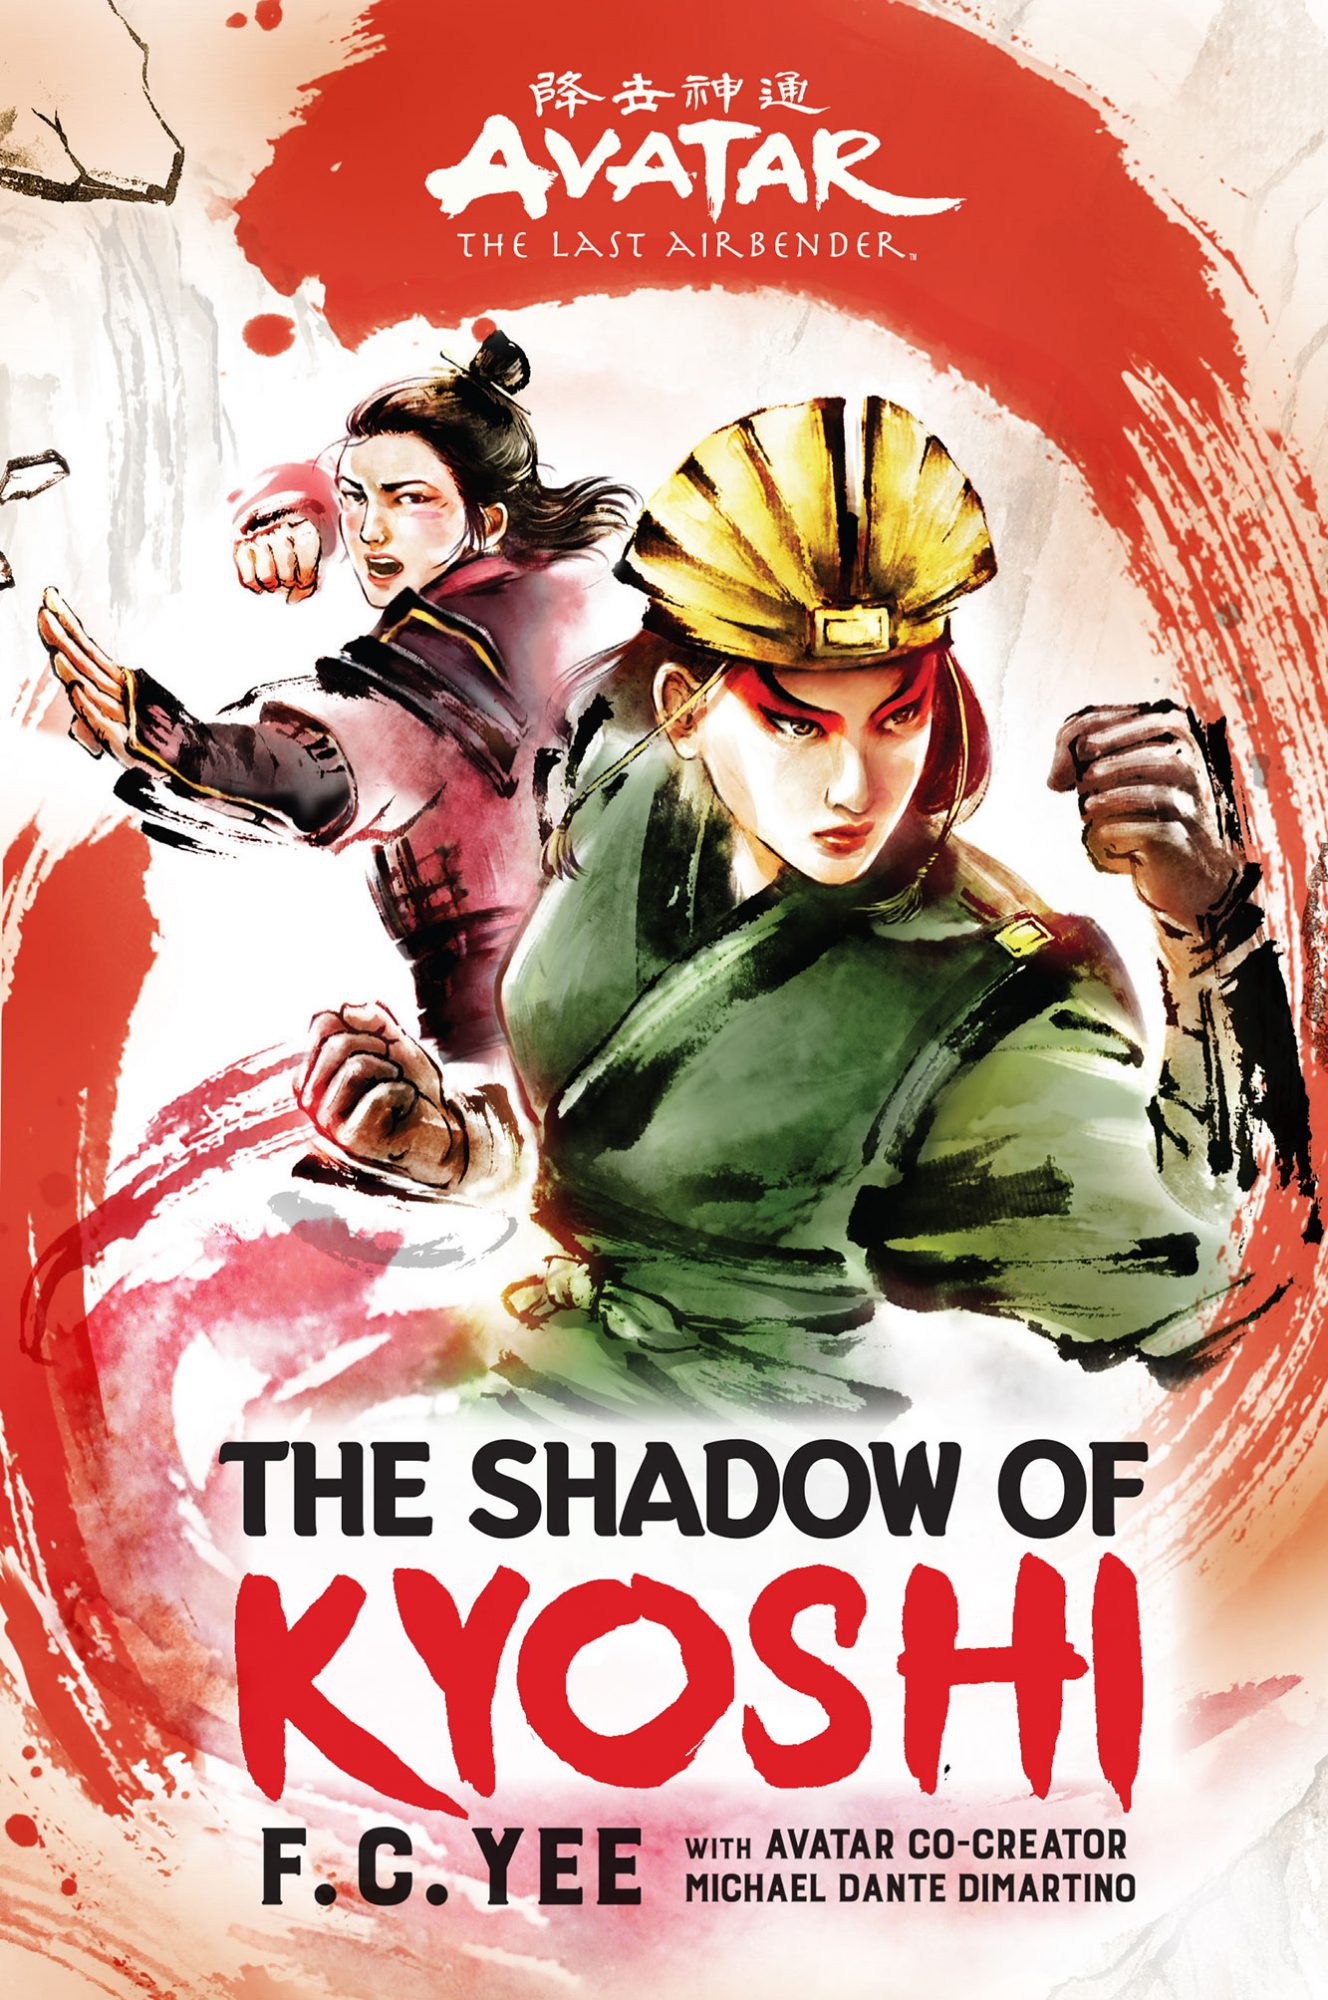 Avatar: The Last Airbender The Shadow of Kyoshi